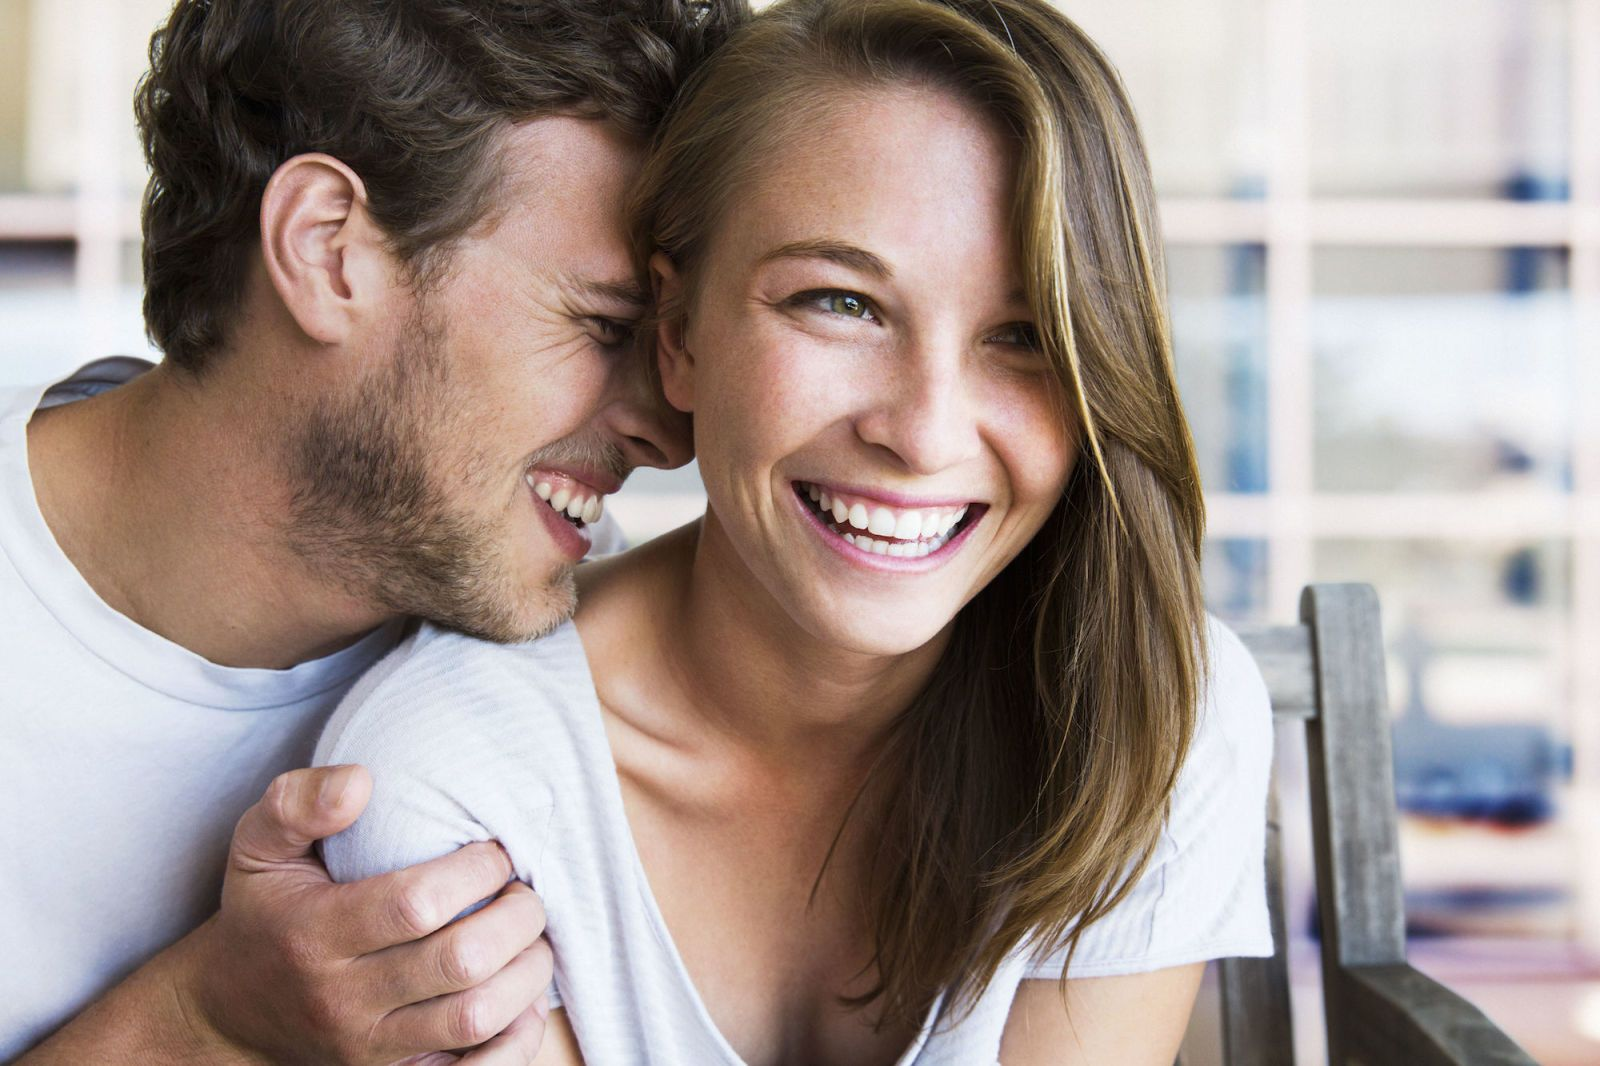 flirting moves that work on women without surgery pictures